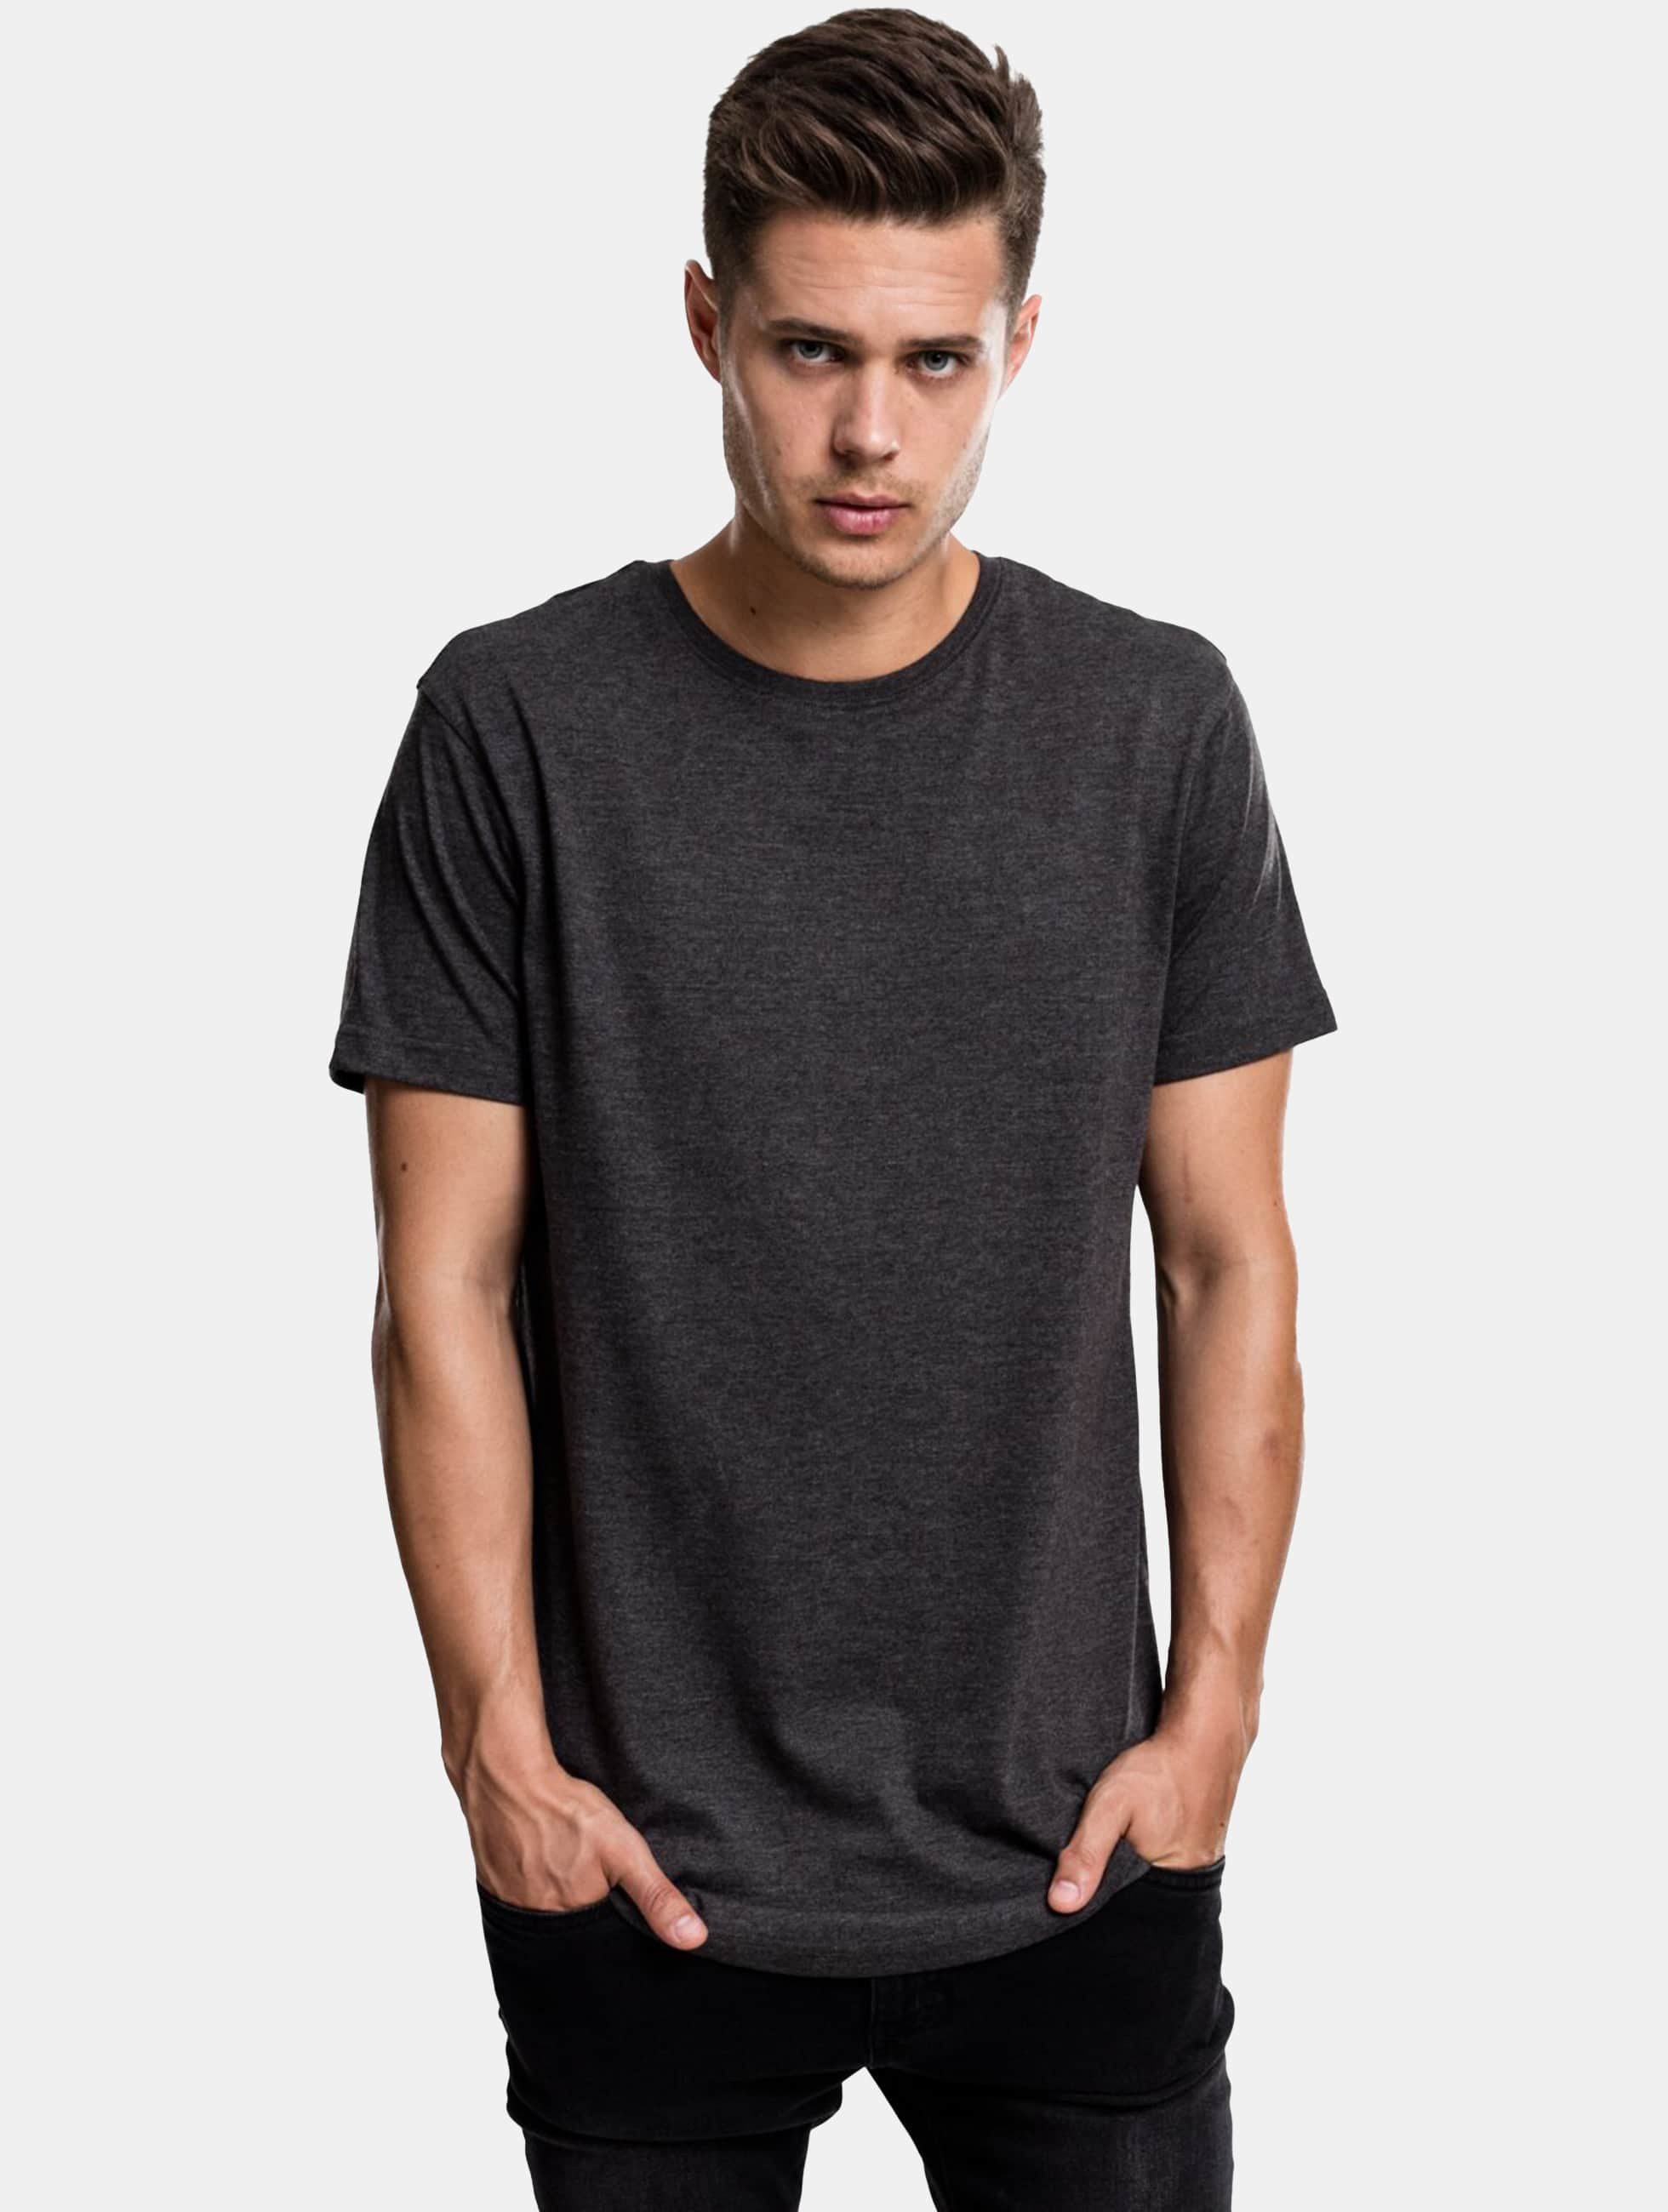 Urban Classics Tall Tees Shaped Melange Oversized Long grijs